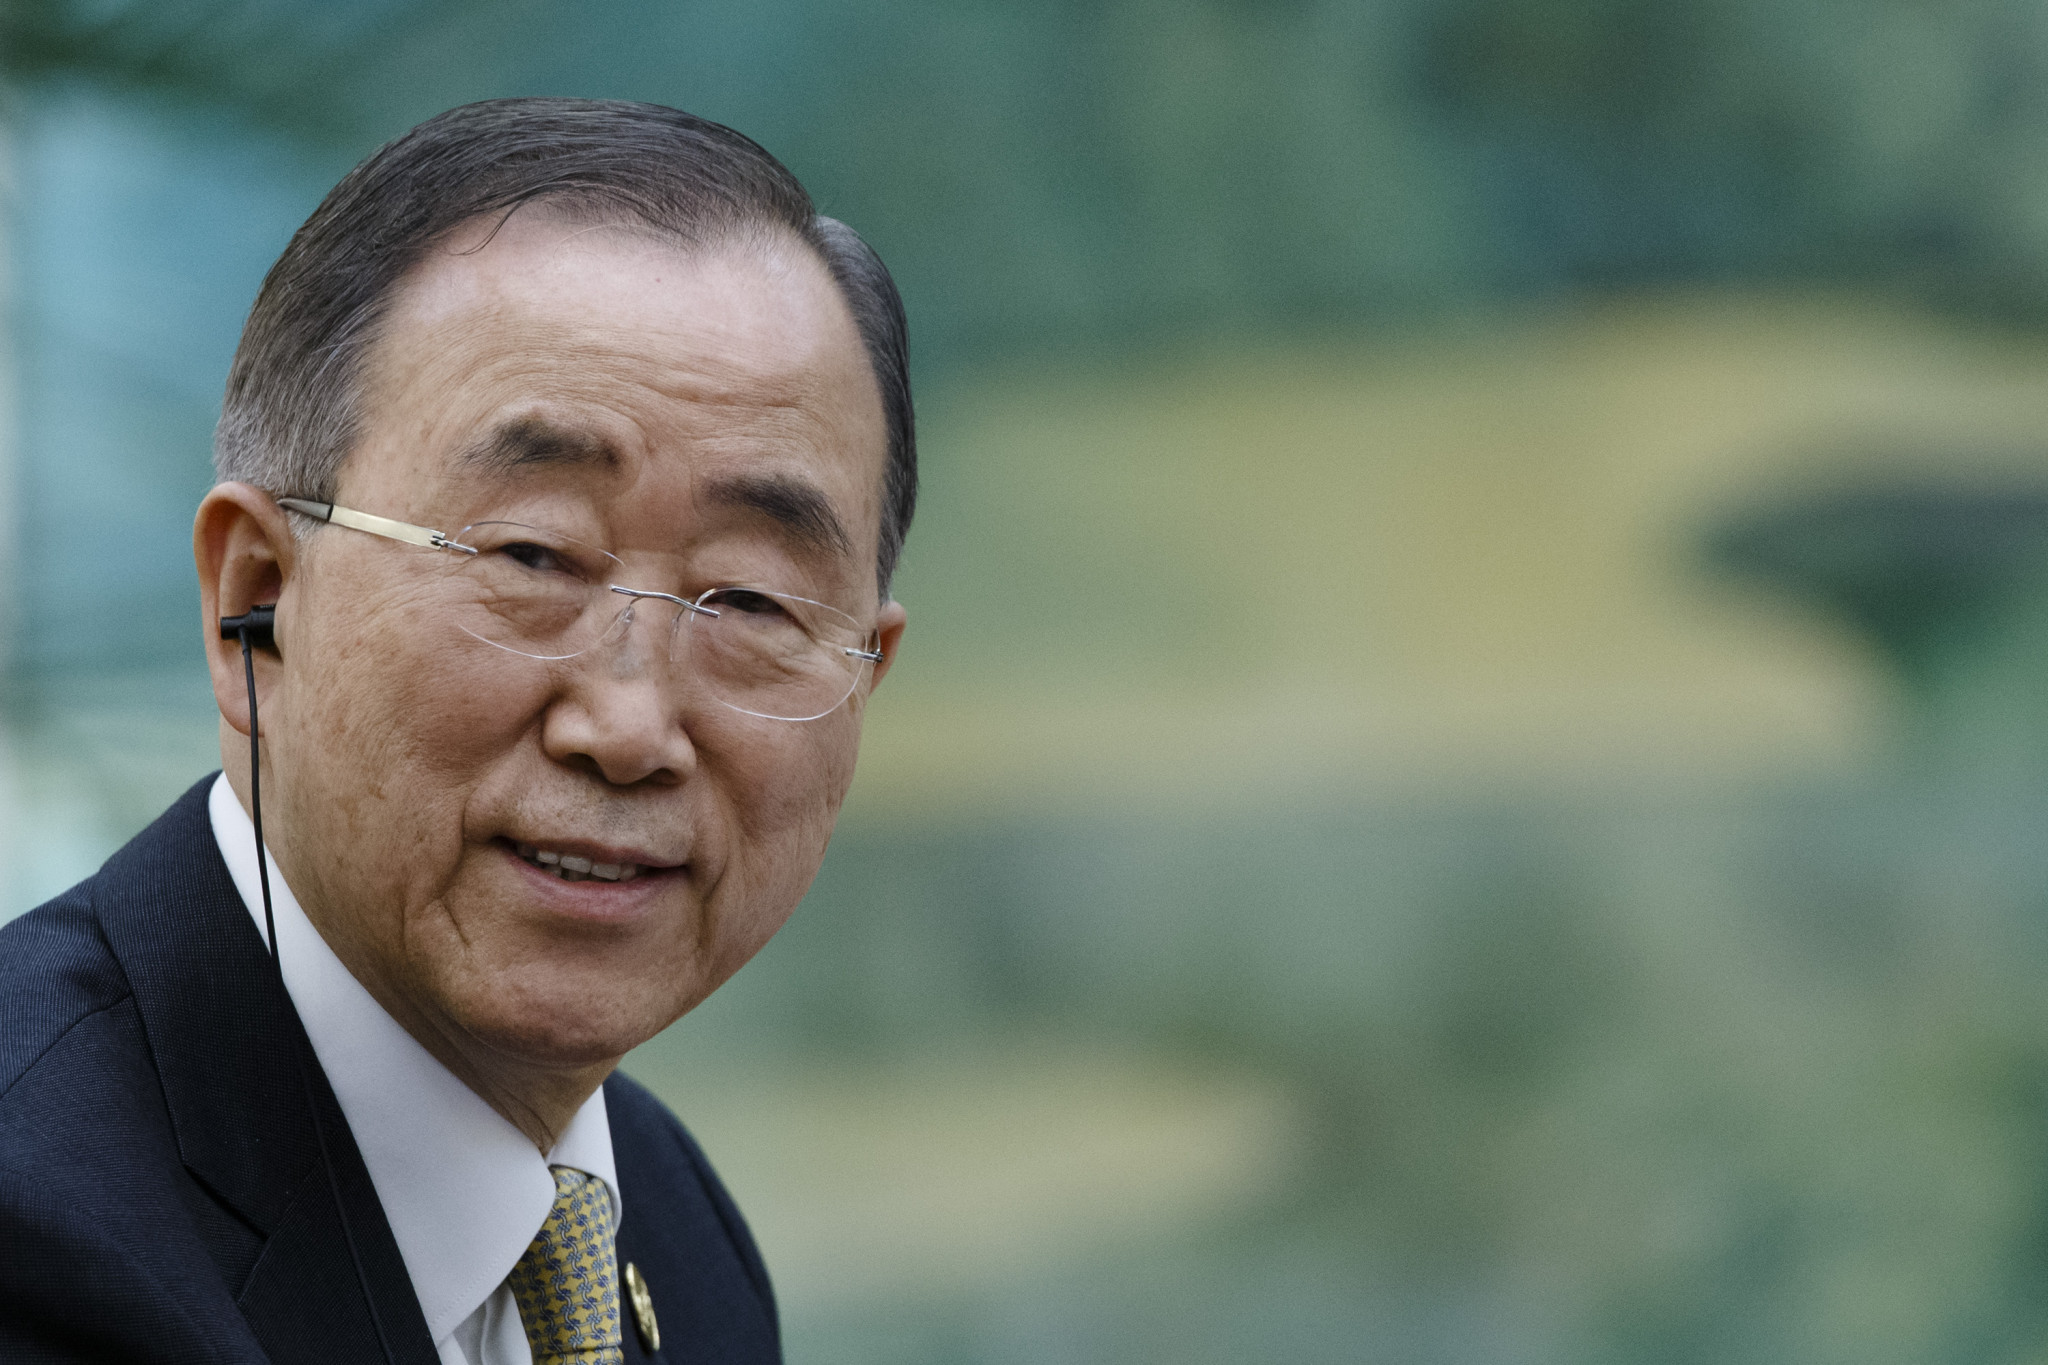 The IOC Ethics Commission is chaired by former United States Secretary-General Ban Ki-moon ©Getty Images